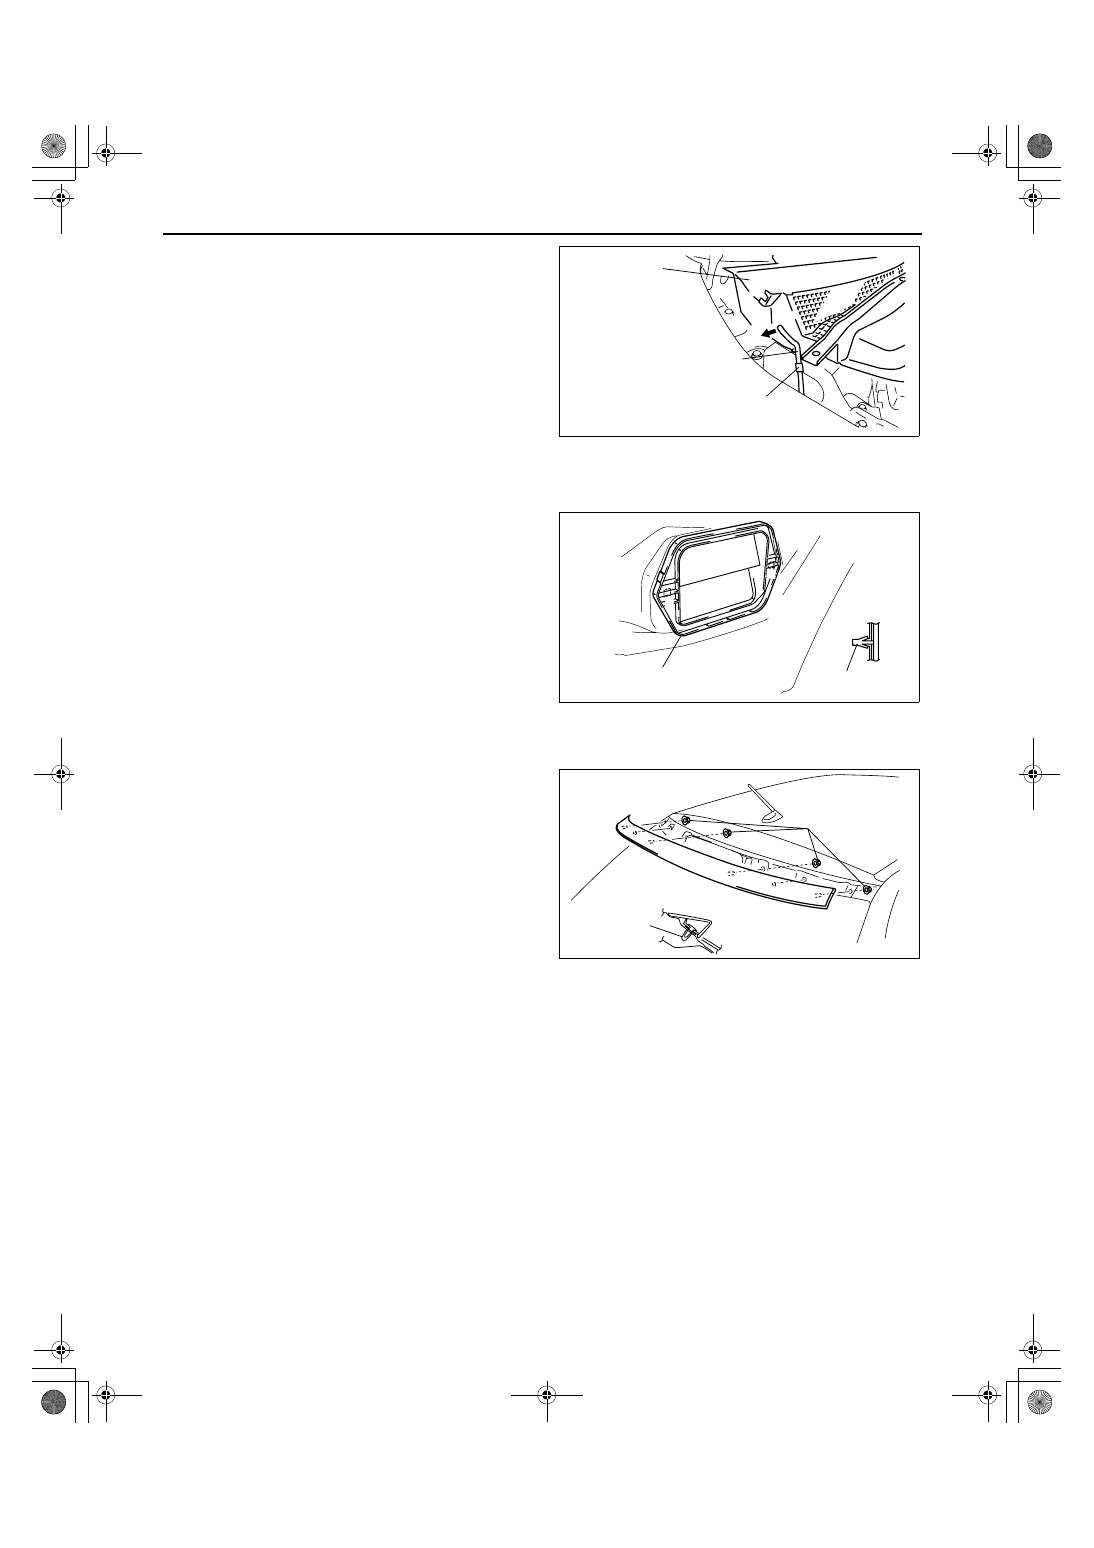 Mazda 3 Service Manual: Sunvisor RemovalInstallation